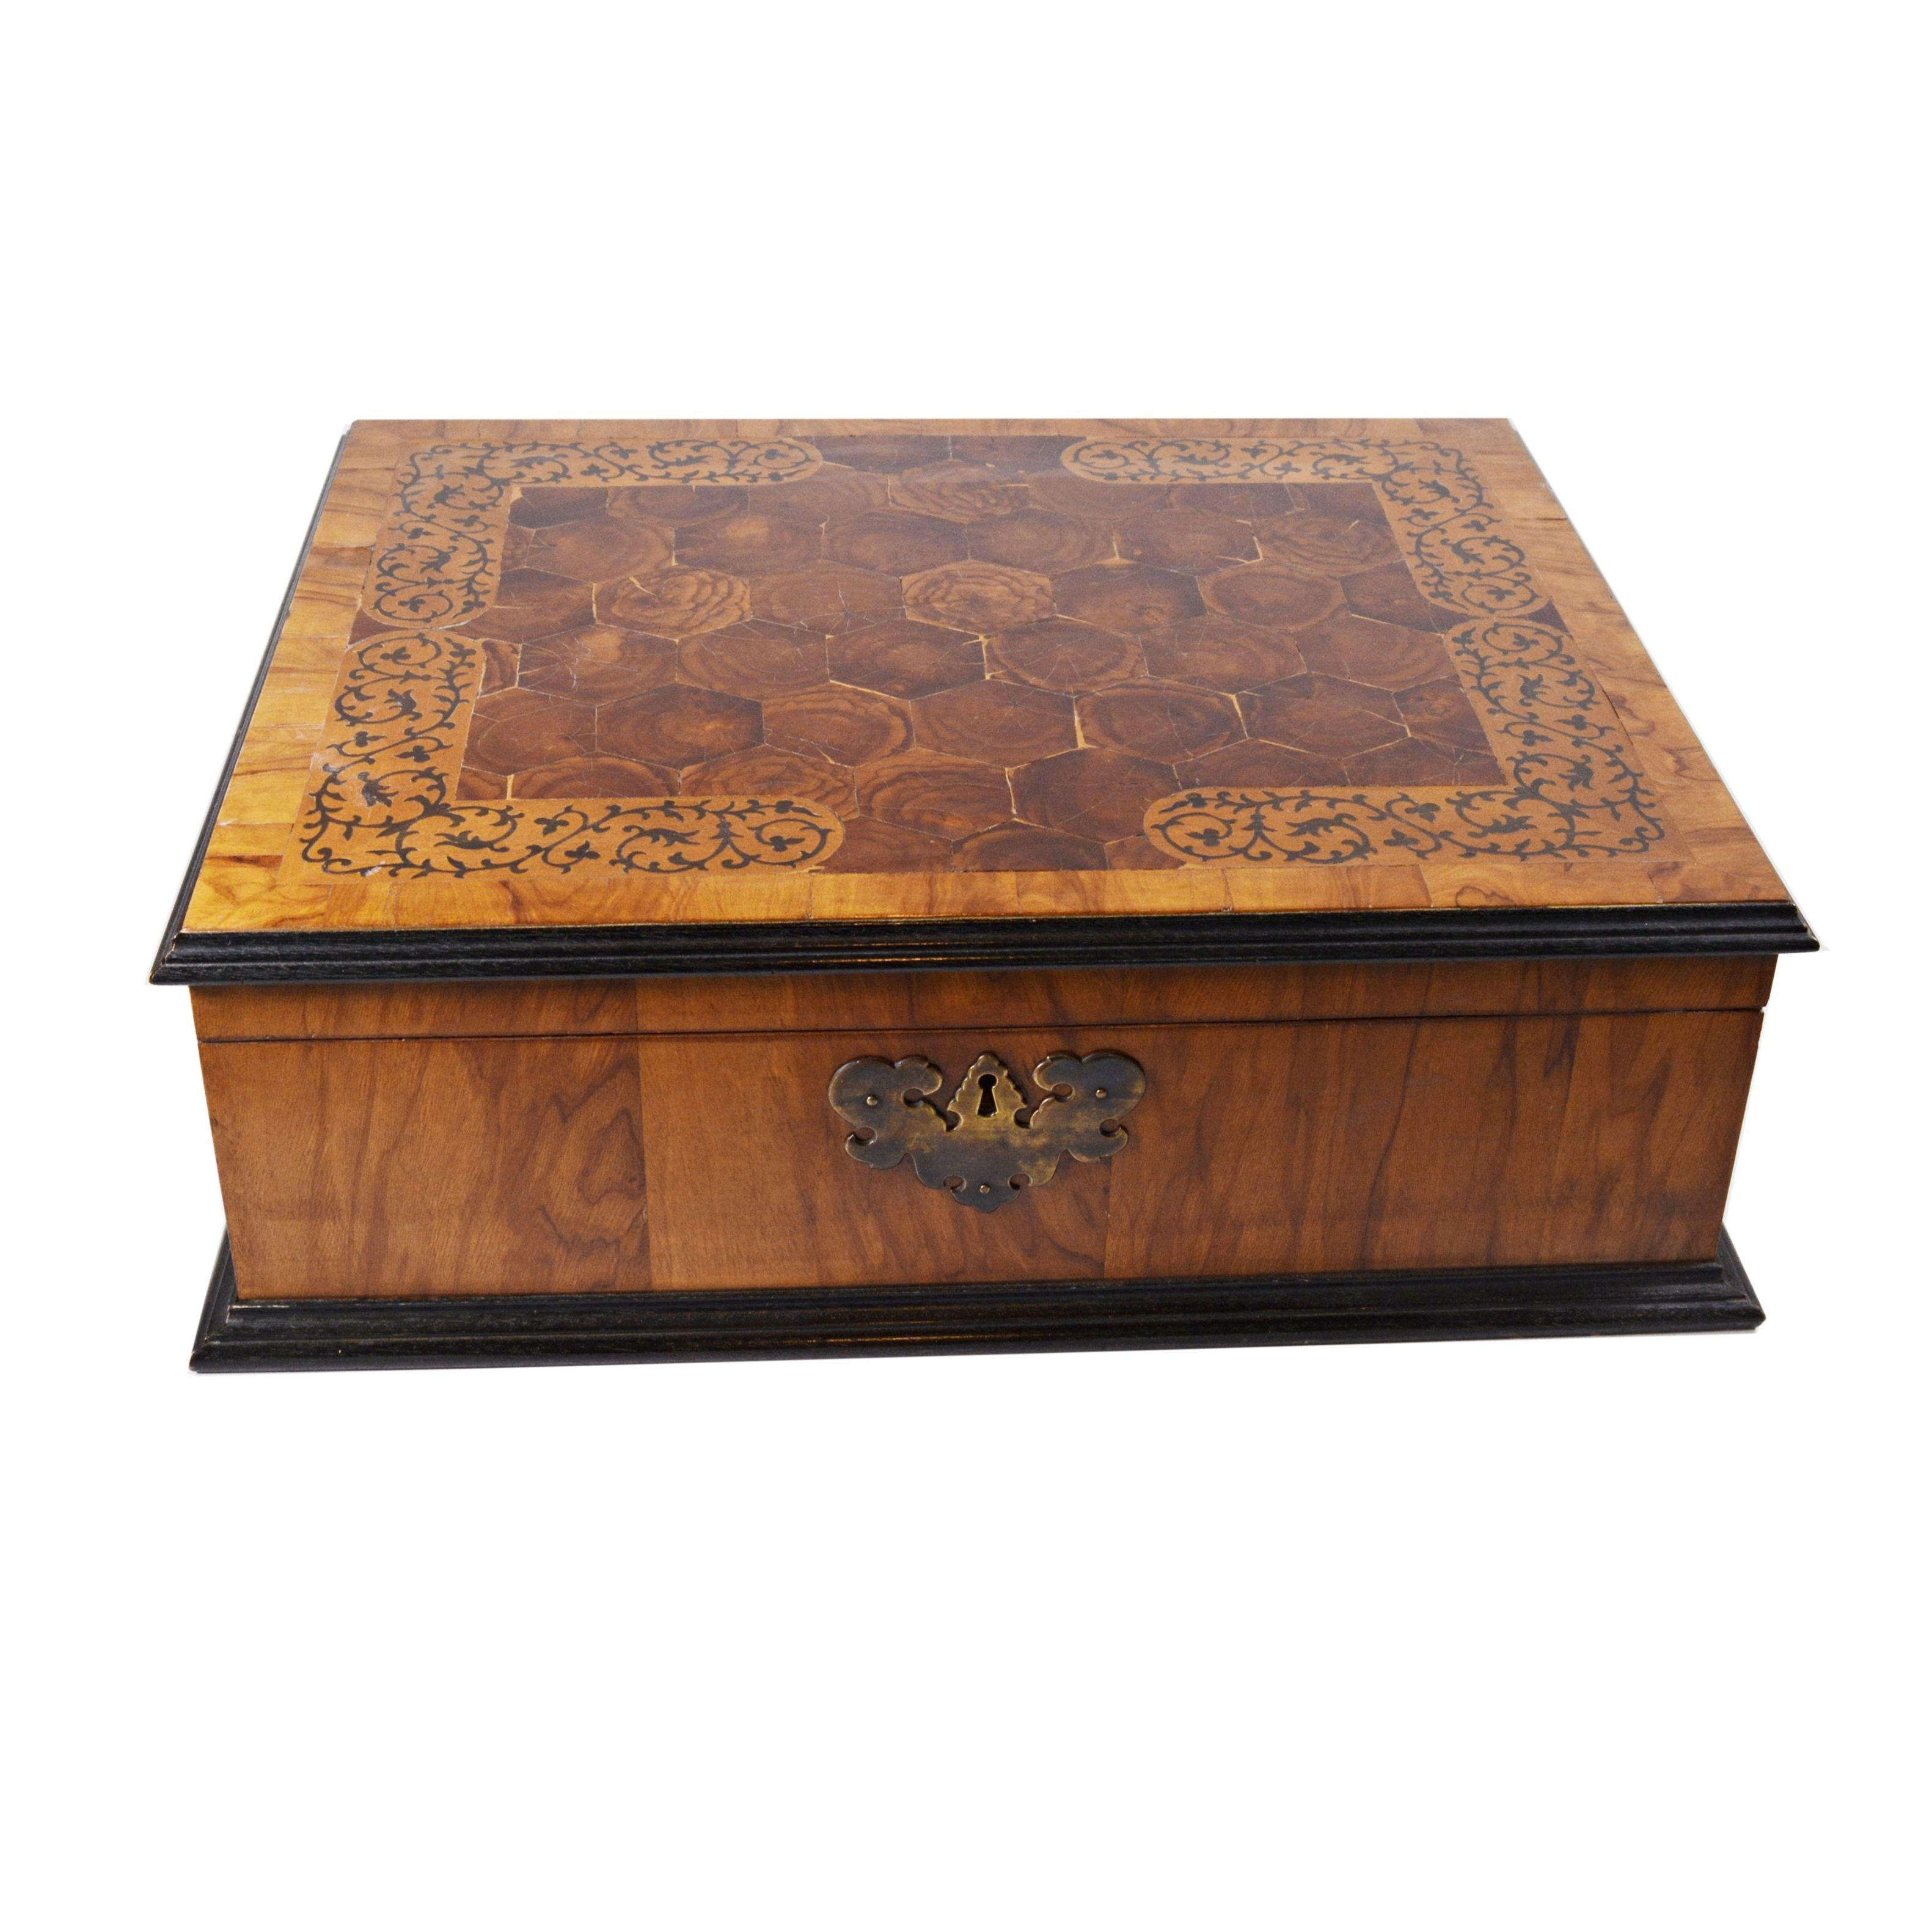 Burled Walnut and Vine Inlay Humidor, Vintage